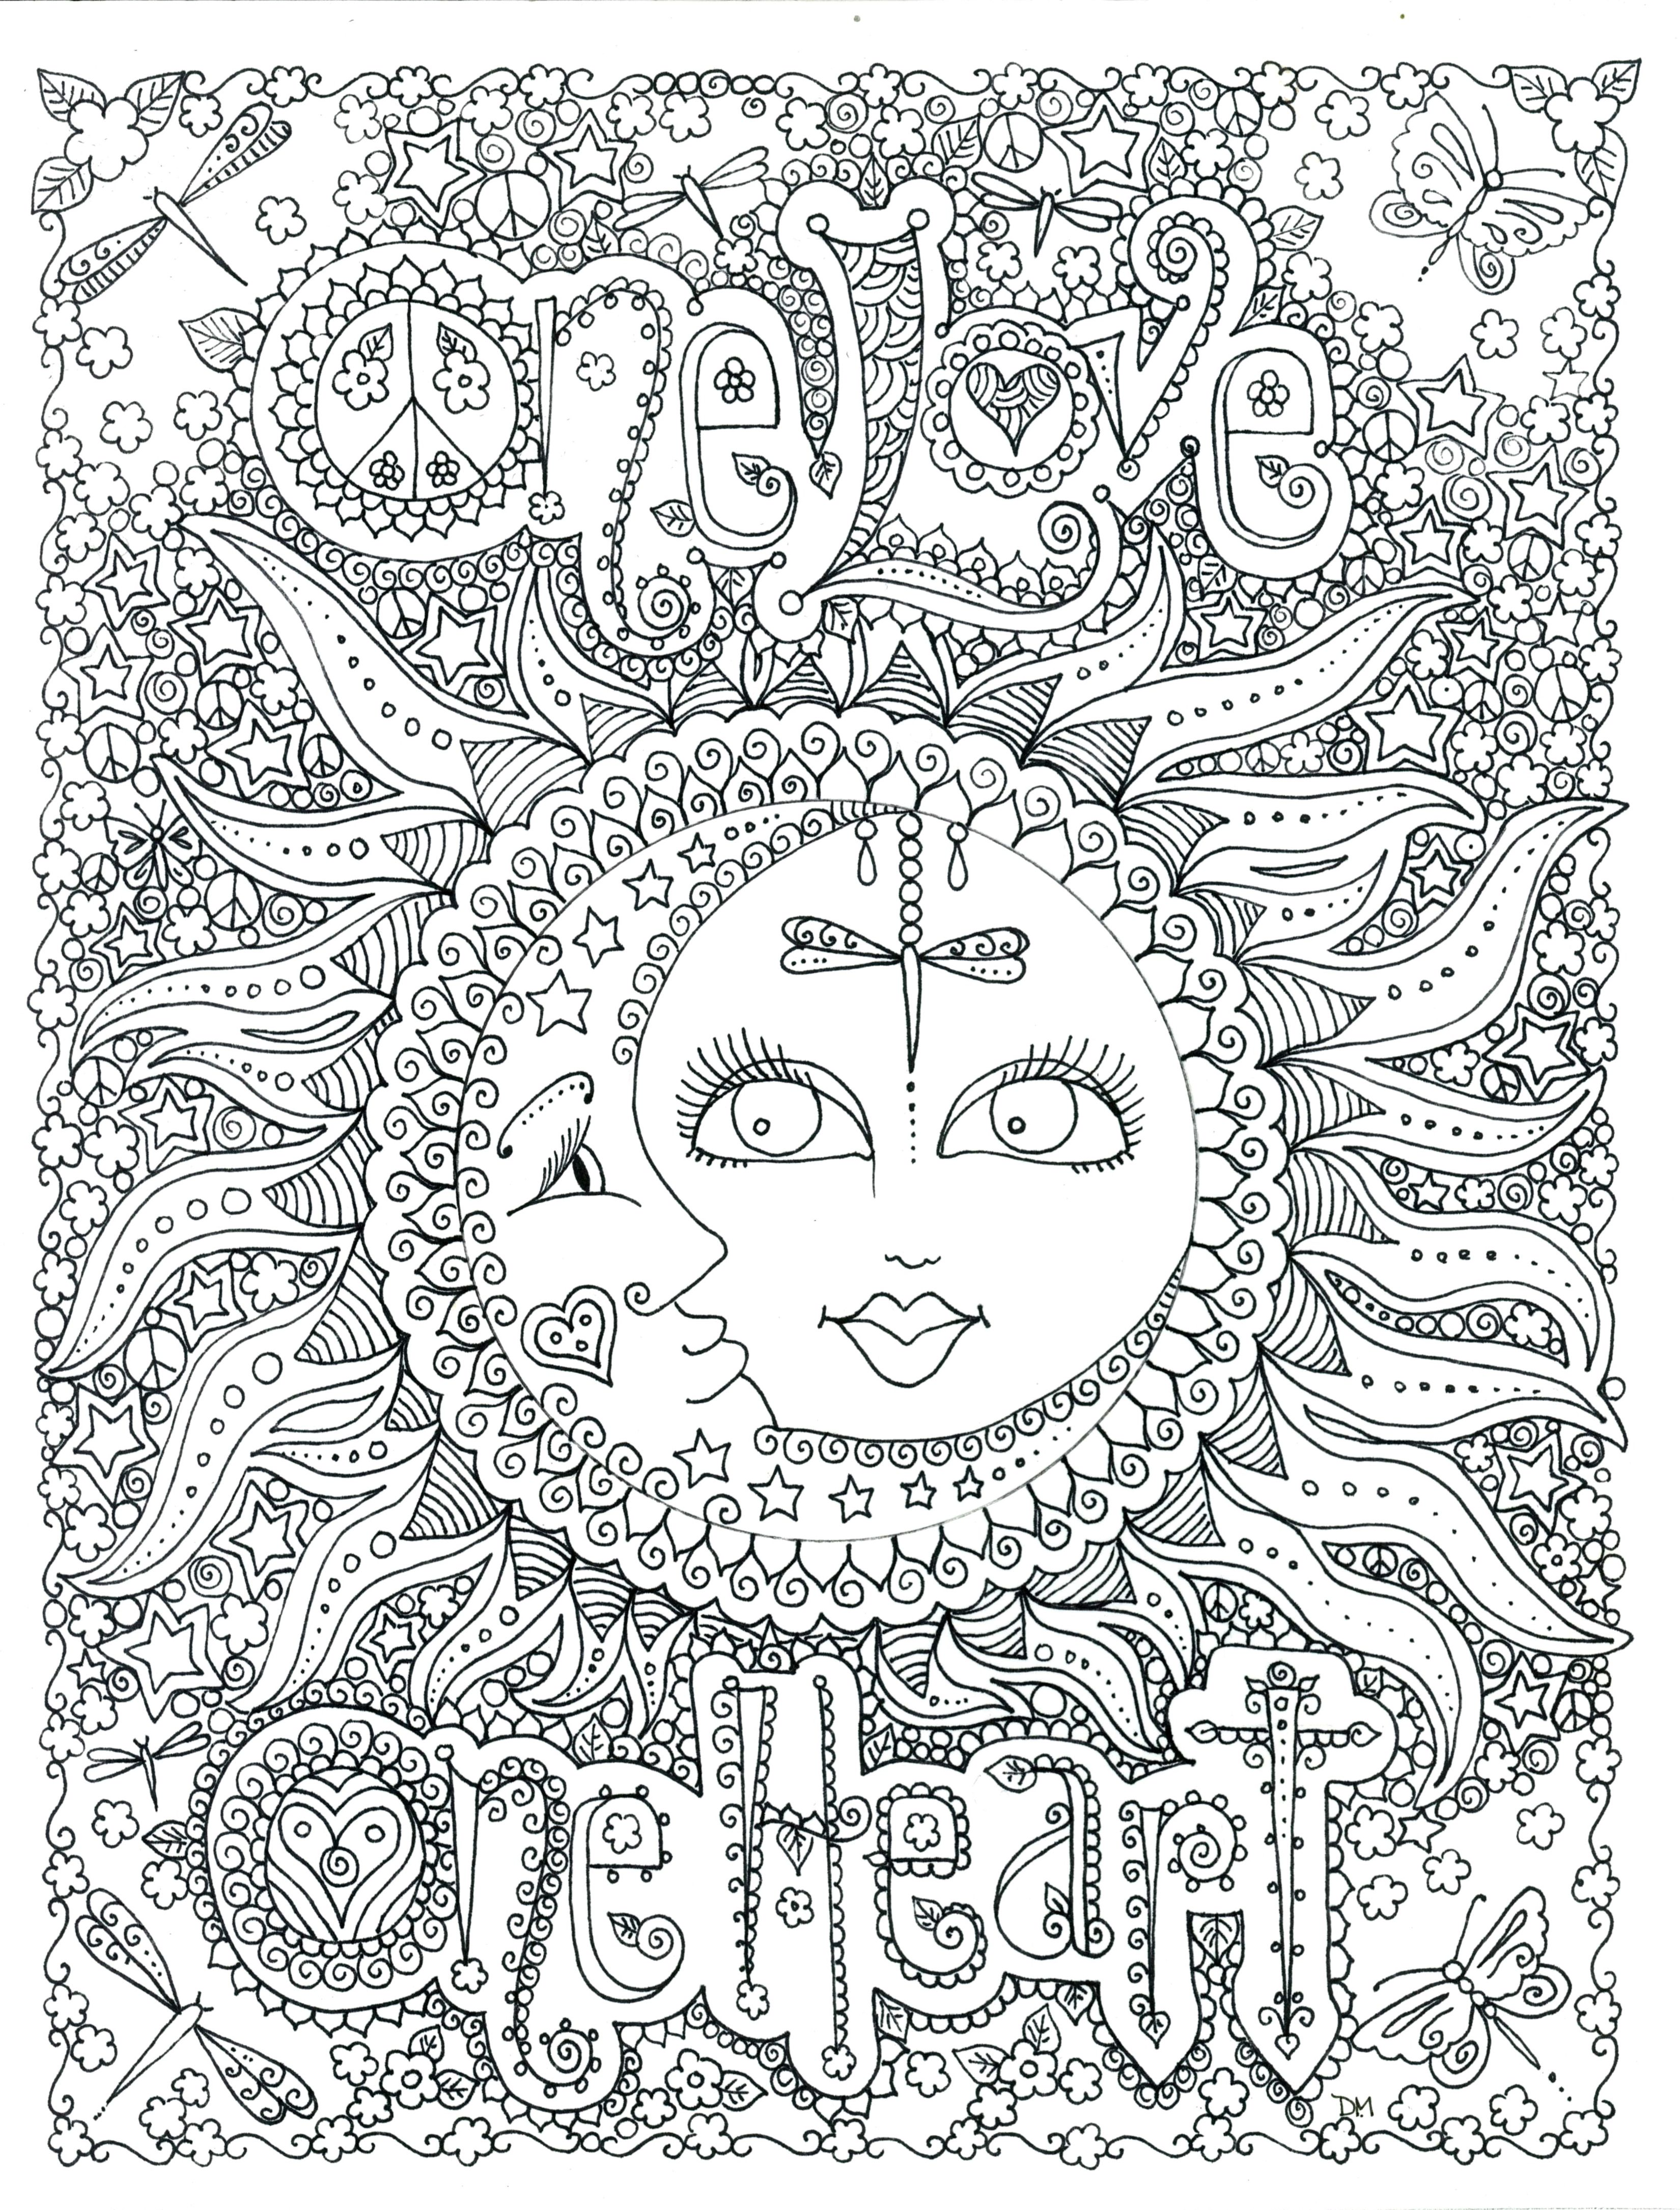 One Love Poster By Chubby Mermaid On Etsy Com Adult Coloring Pages